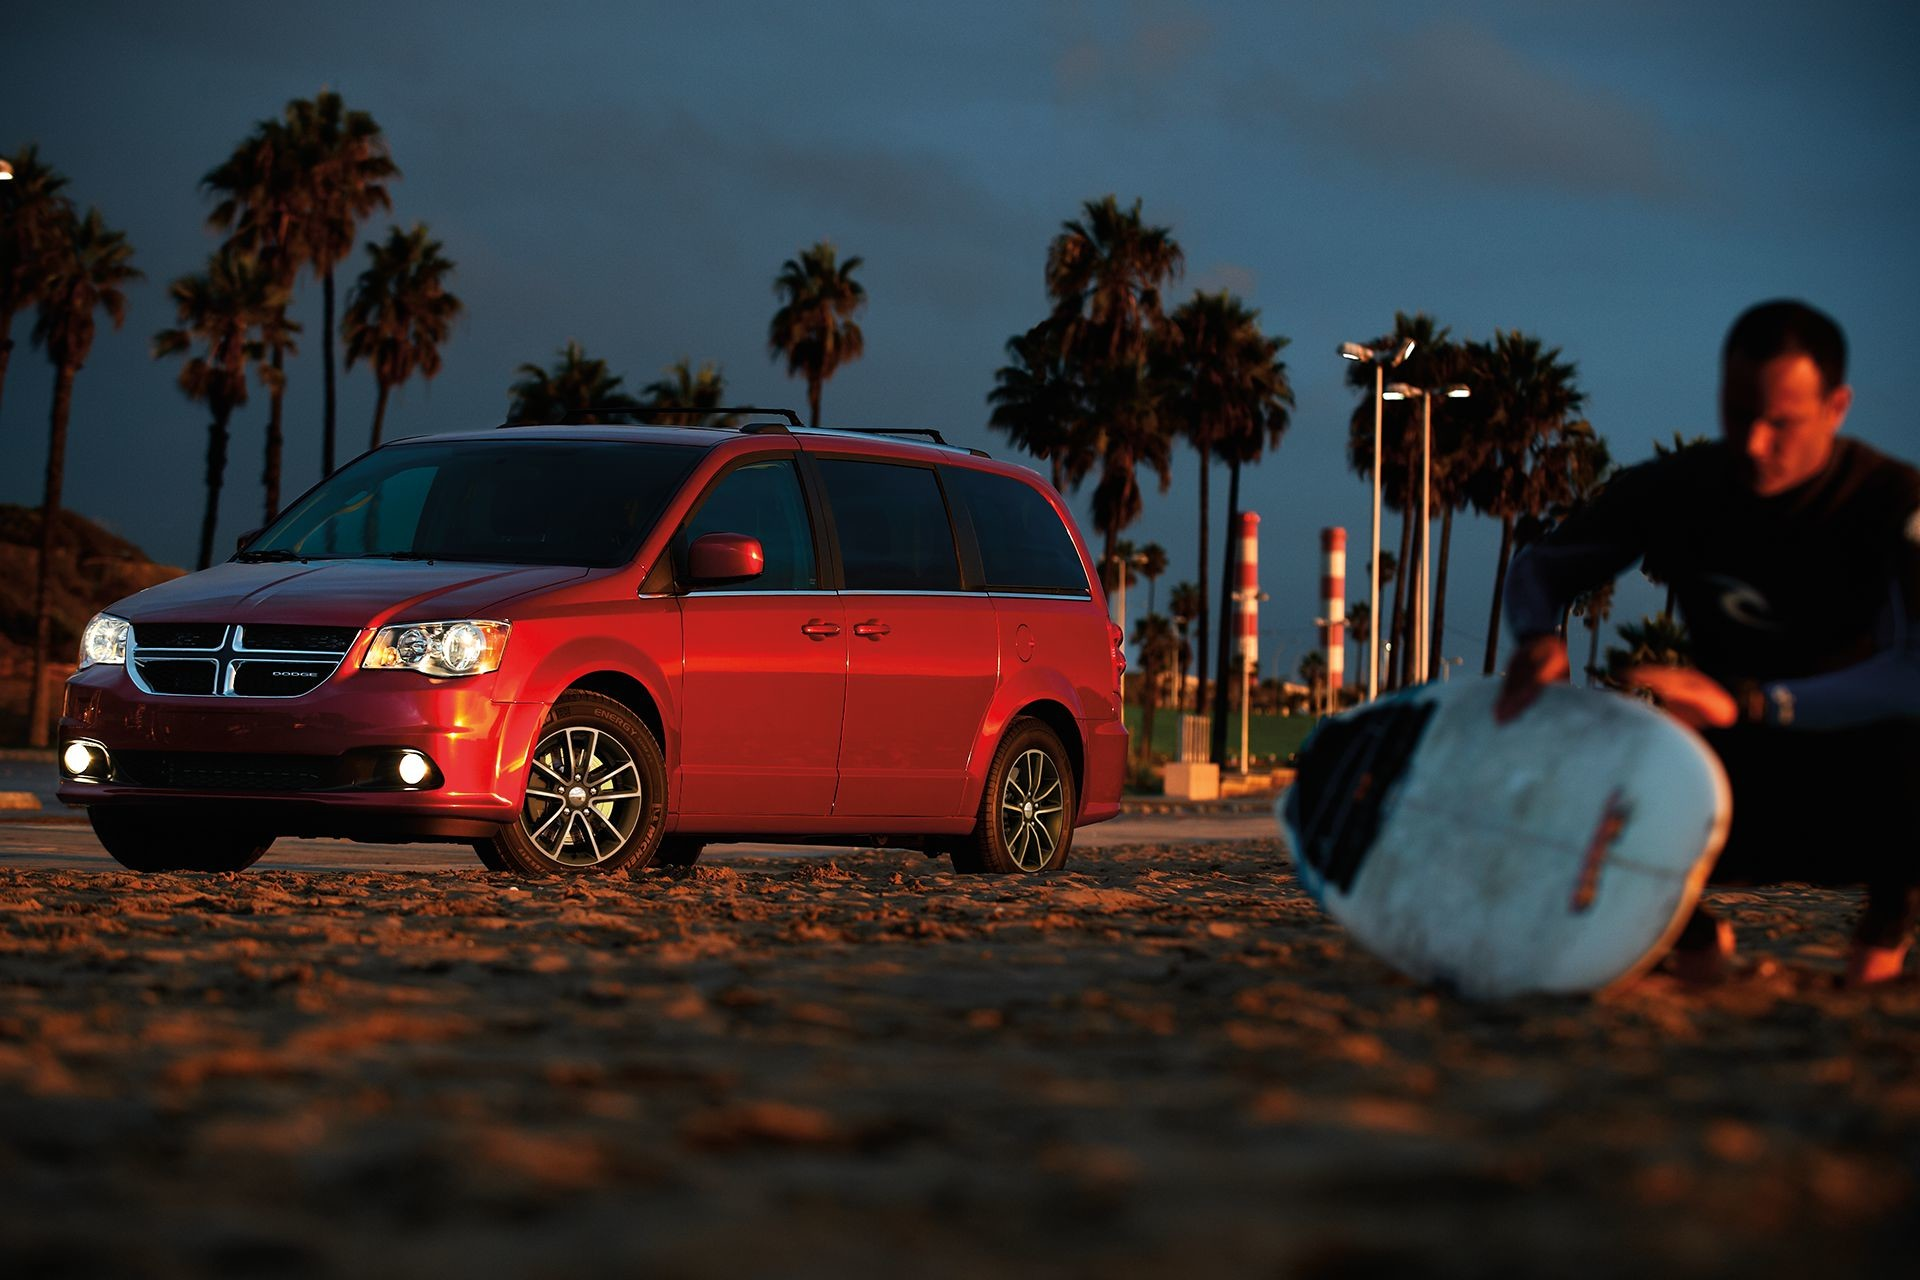 2019 Dodge Grand Caravan exterior view in red on a beach